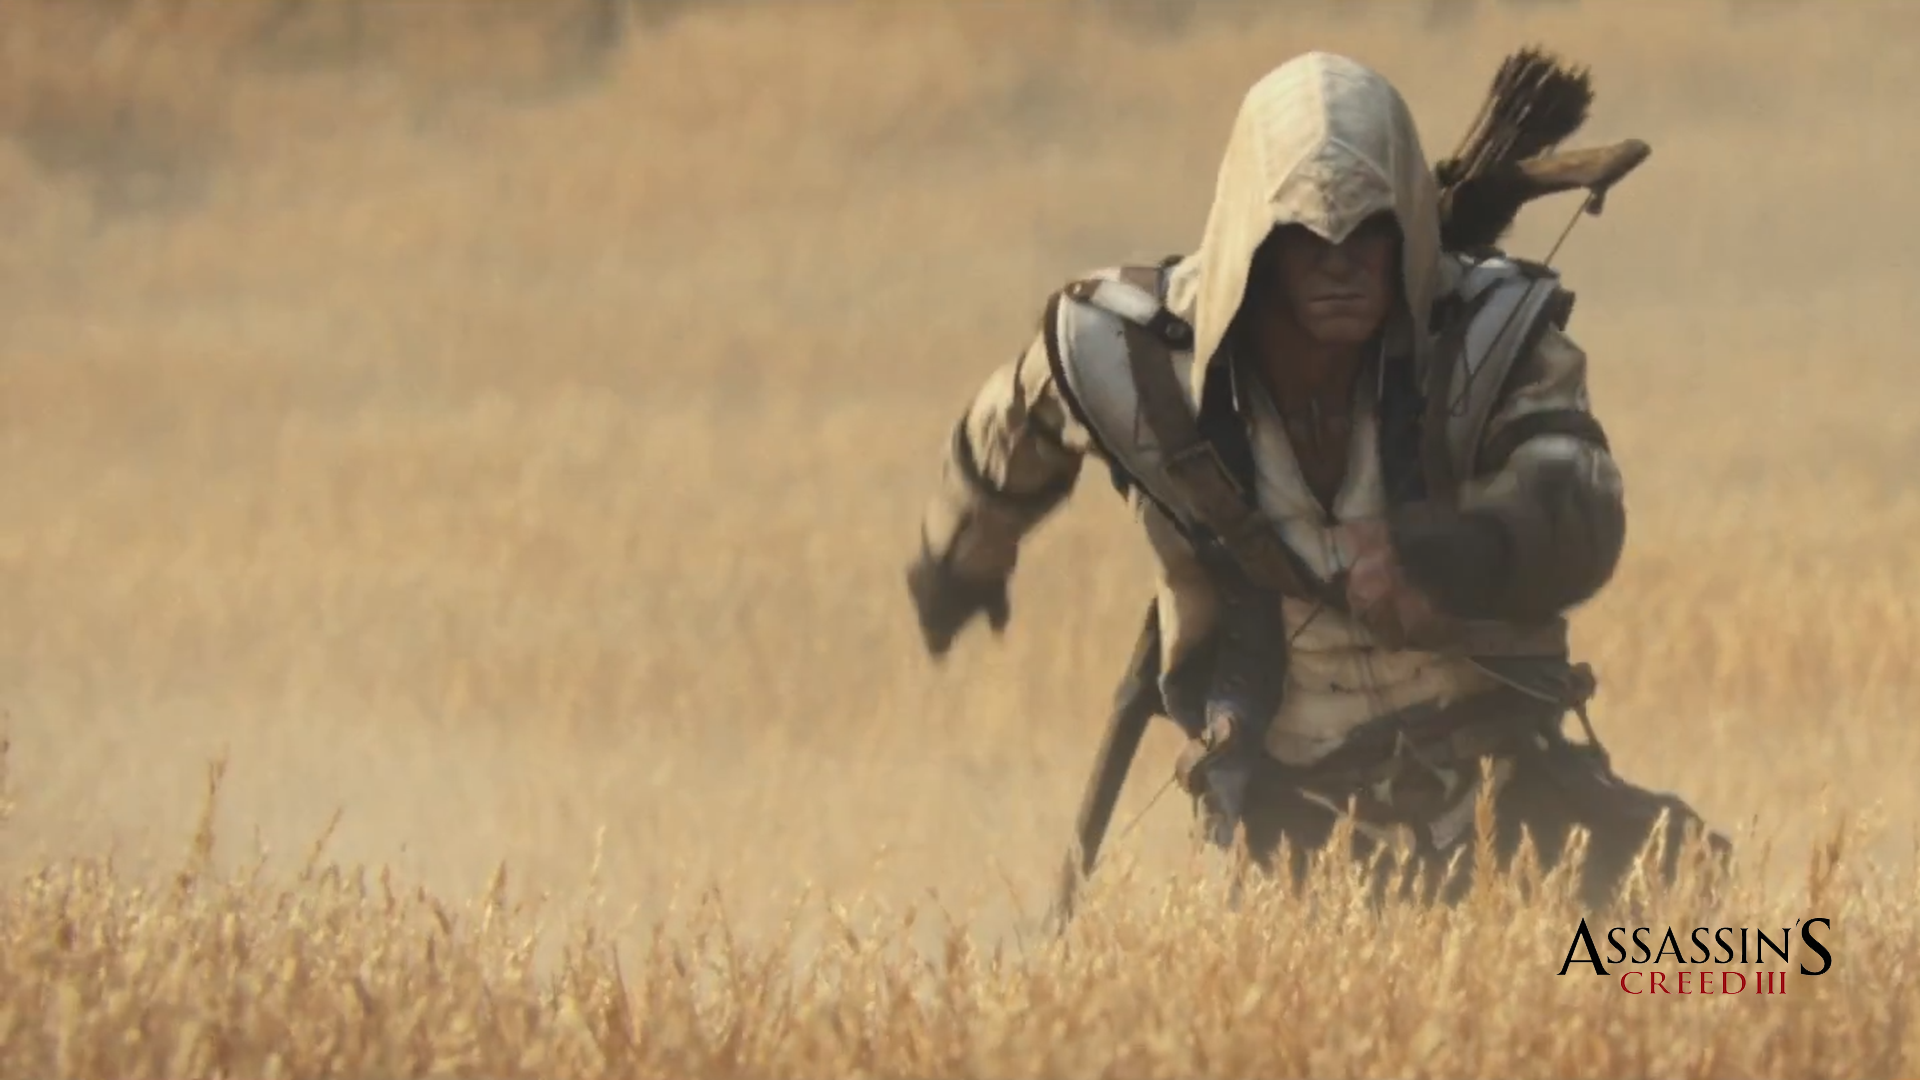 The Assassins Images Creed III HD Wallpaper And Background Photos